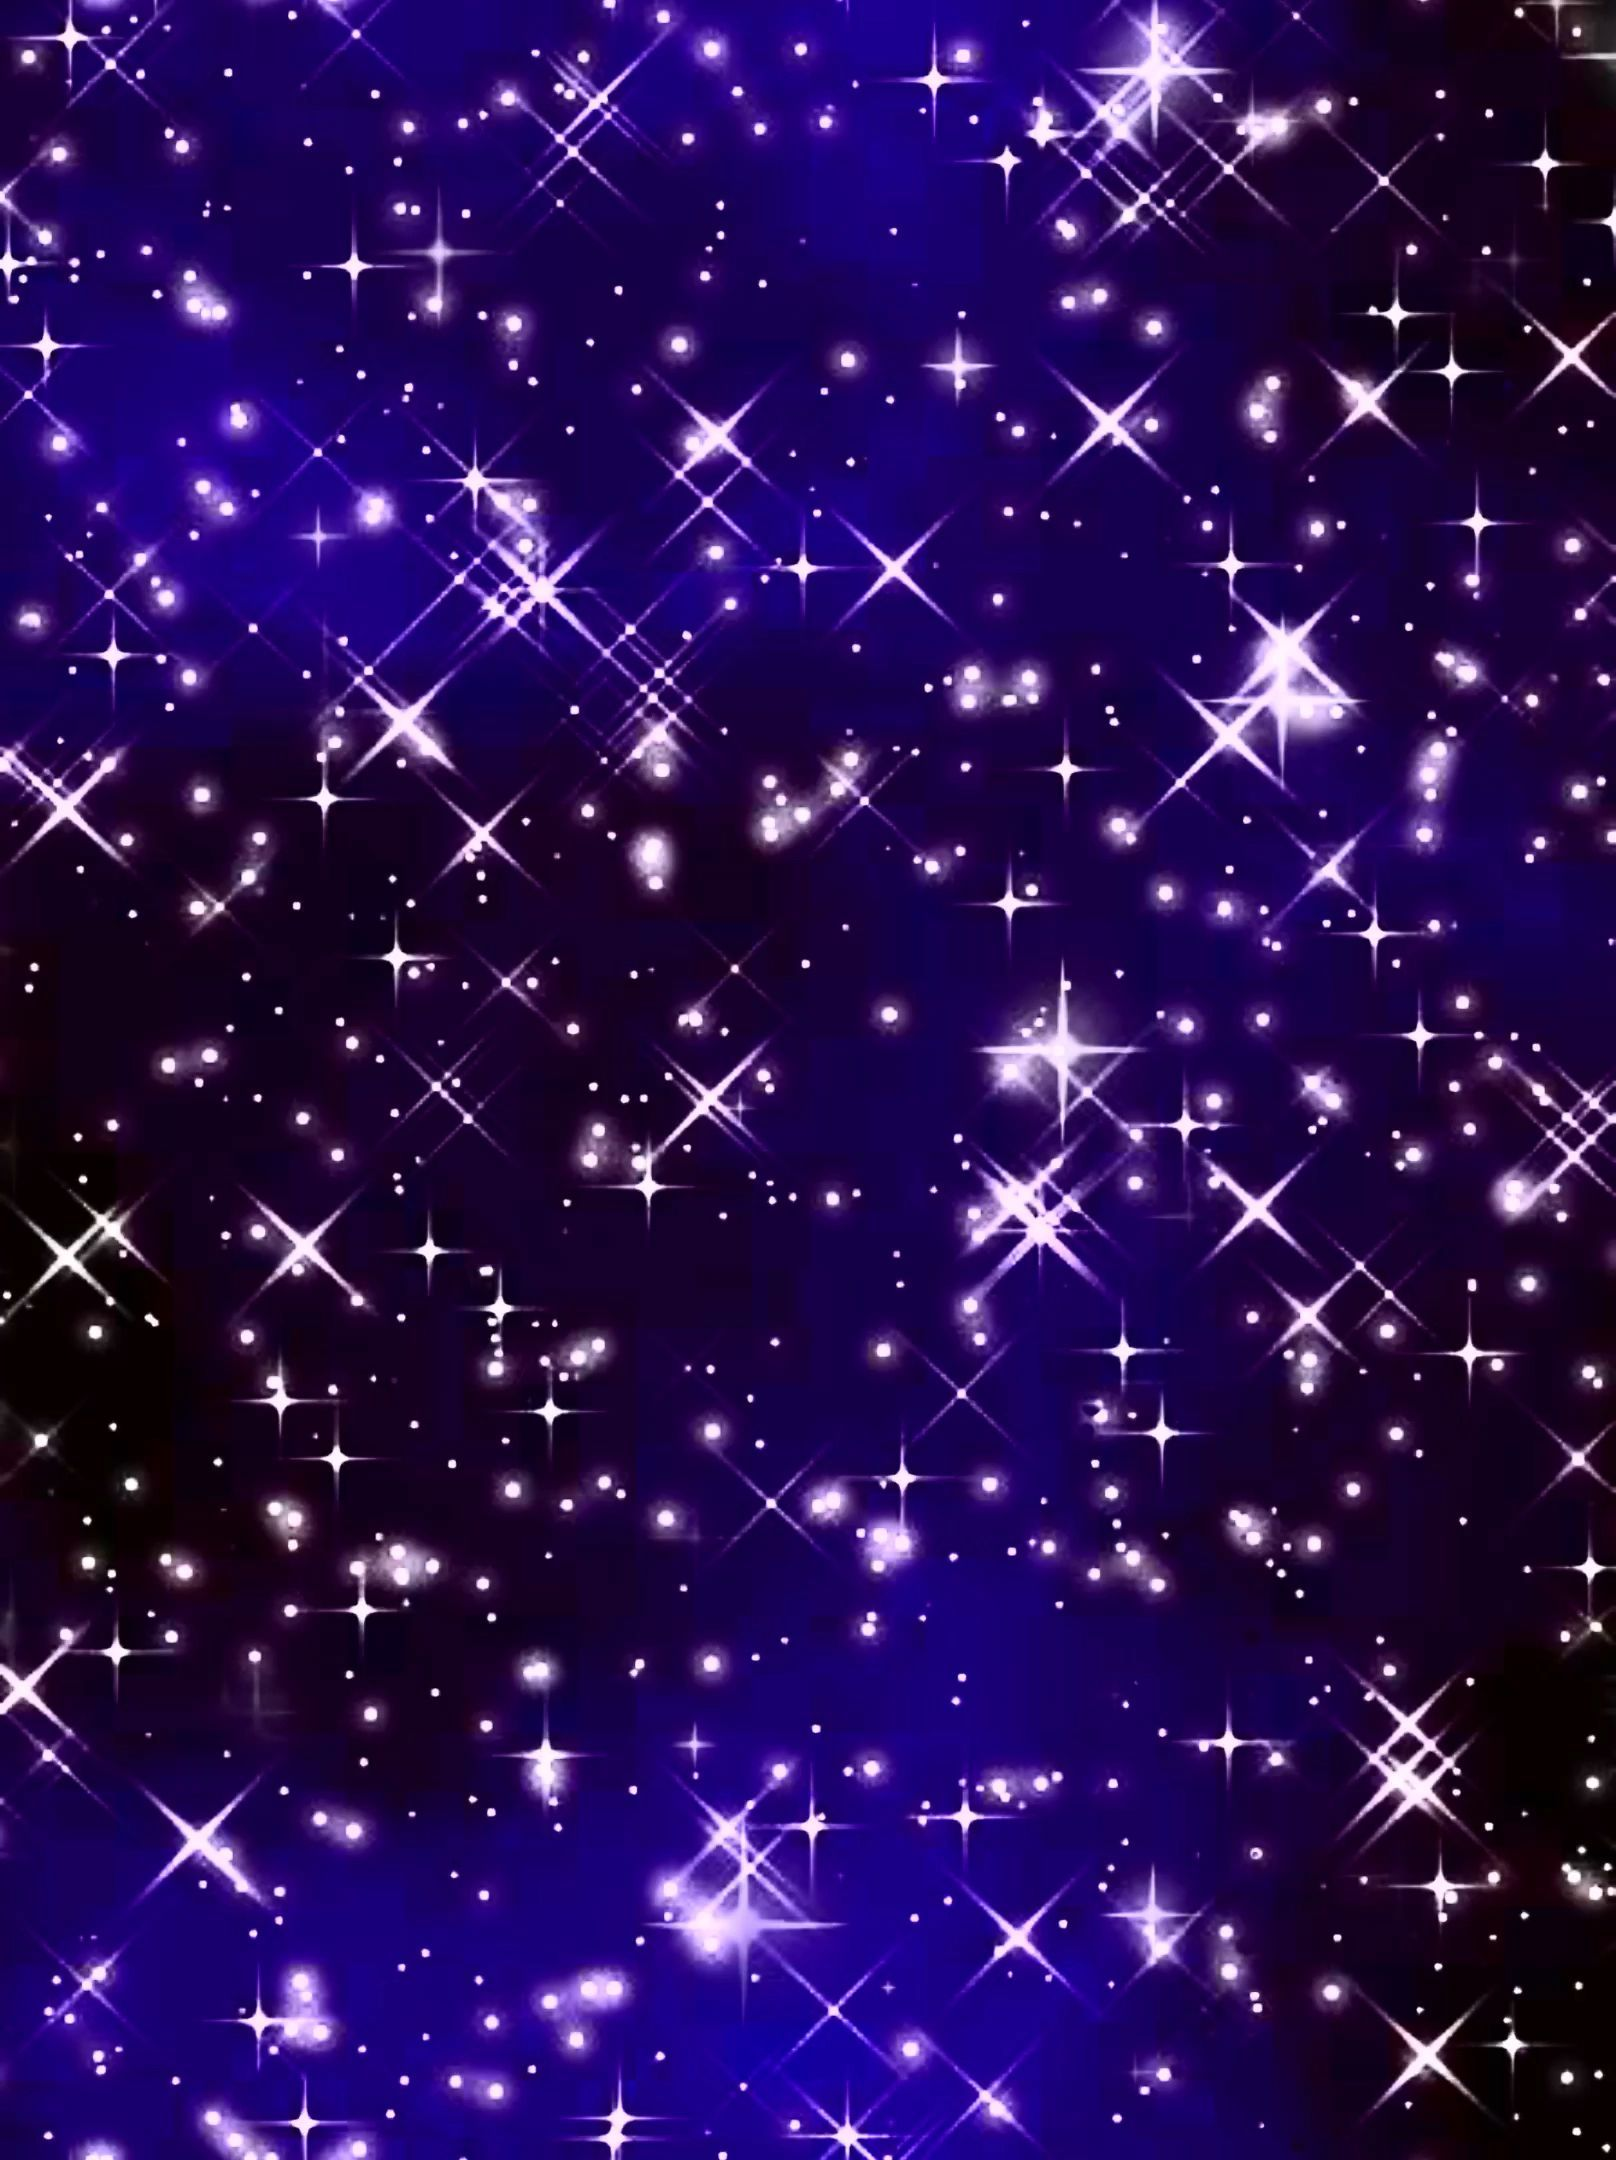 Background Image Galaxy Gif Backgroundimage Galaxy Universe Discover Share Gifs In 2021 Universe Galaxy Background Images Gif Background